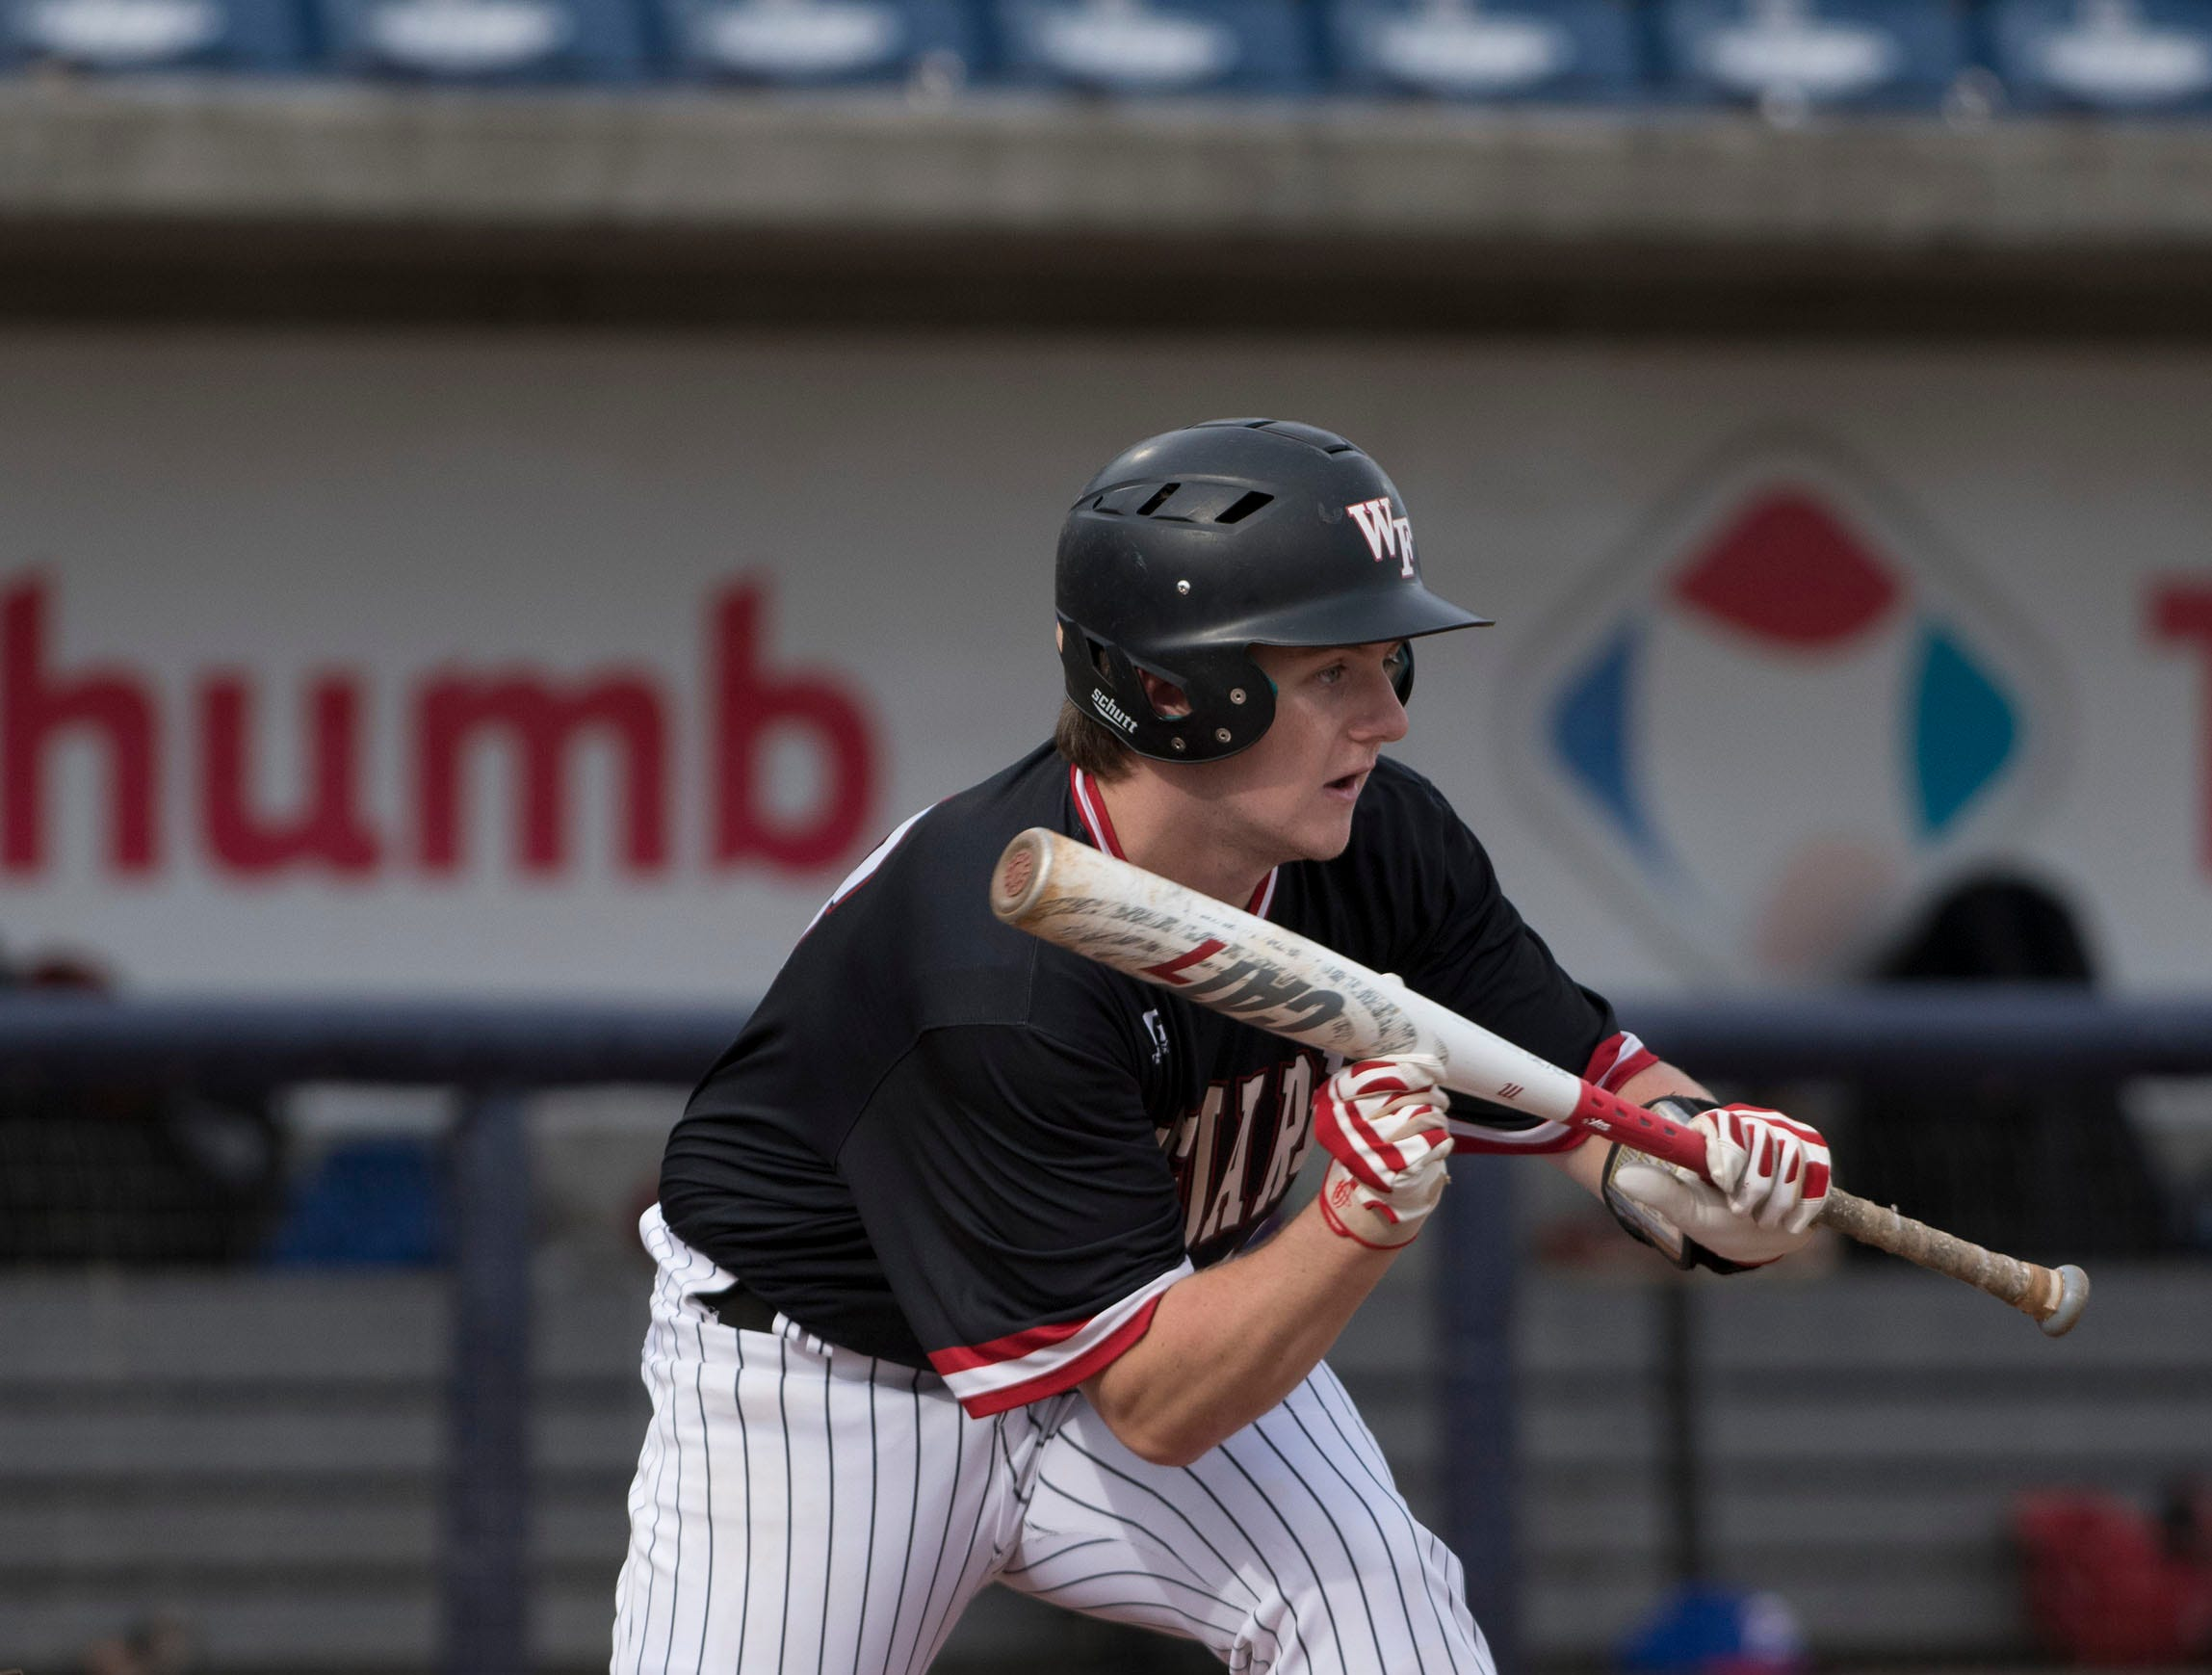 West Florida High School's Will Hackett,(No. 13) shows bunt against Pace High School during the Battle of the Bay tournament at Blue Wahoos stadium on Tuesday, March 12, 2019.